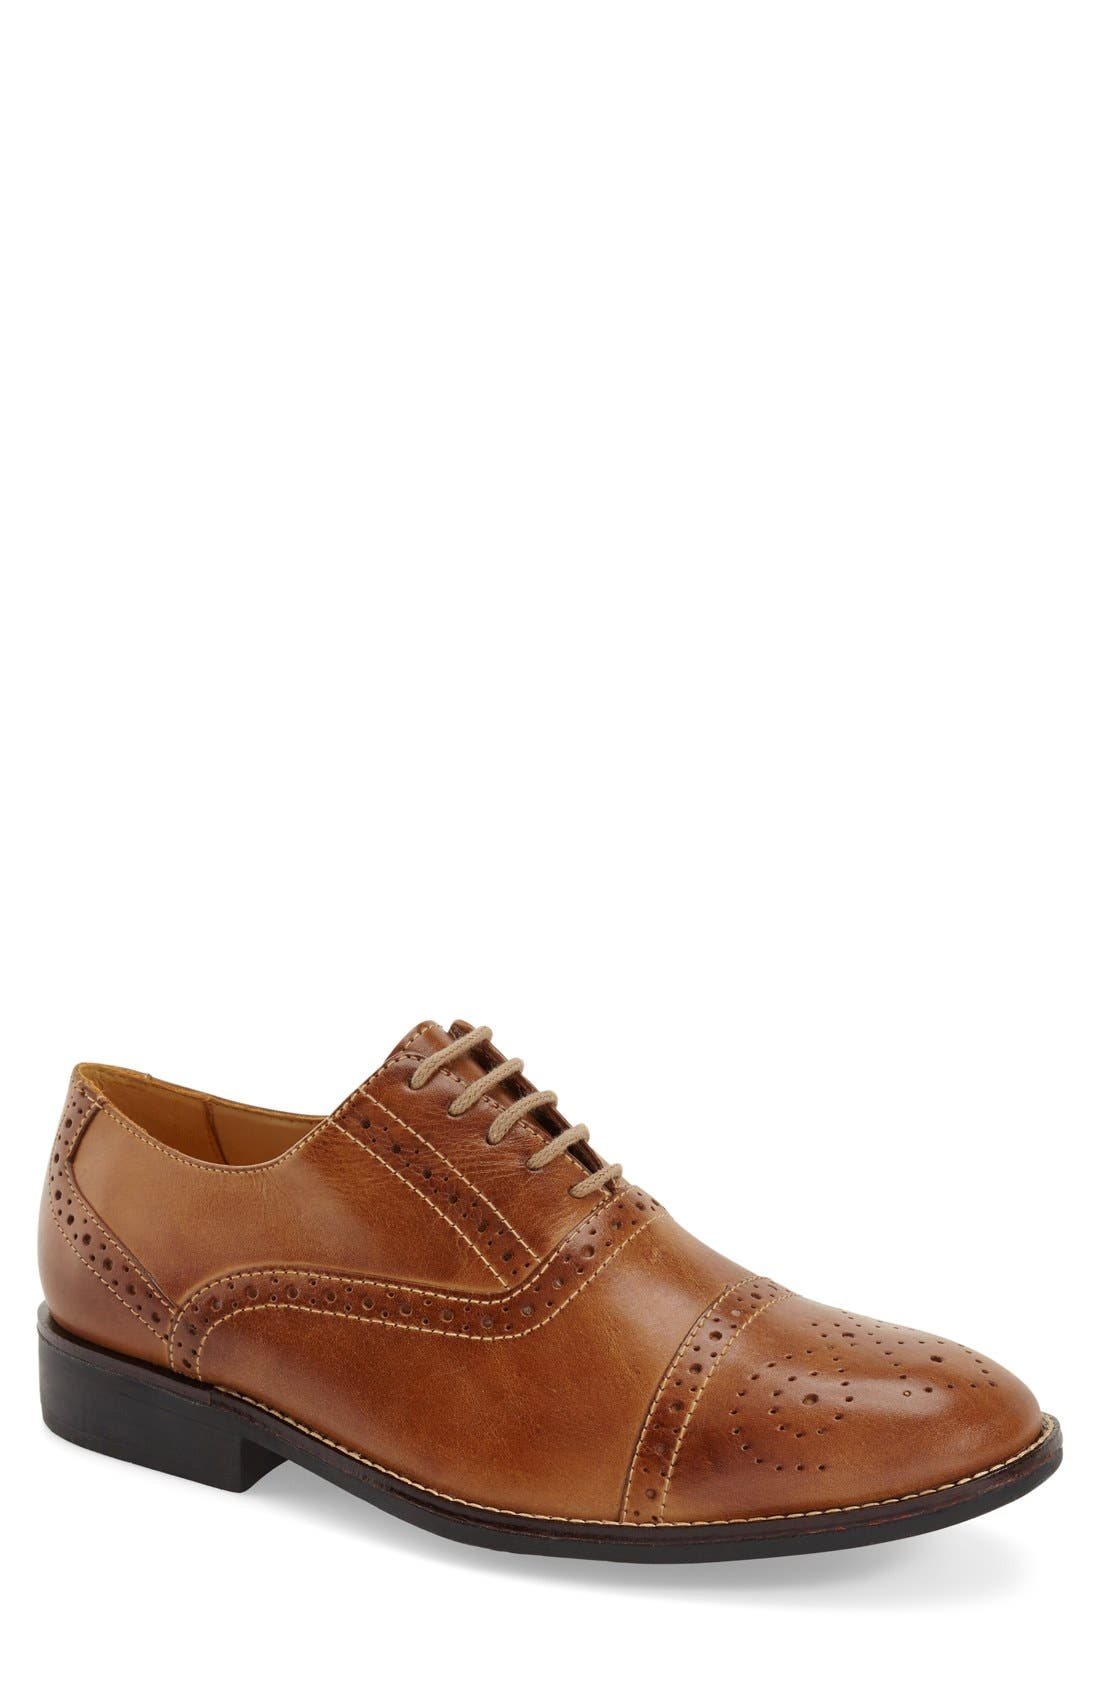 'Barrett' Cap Toe Oxford,                         Main,                         color, Tan